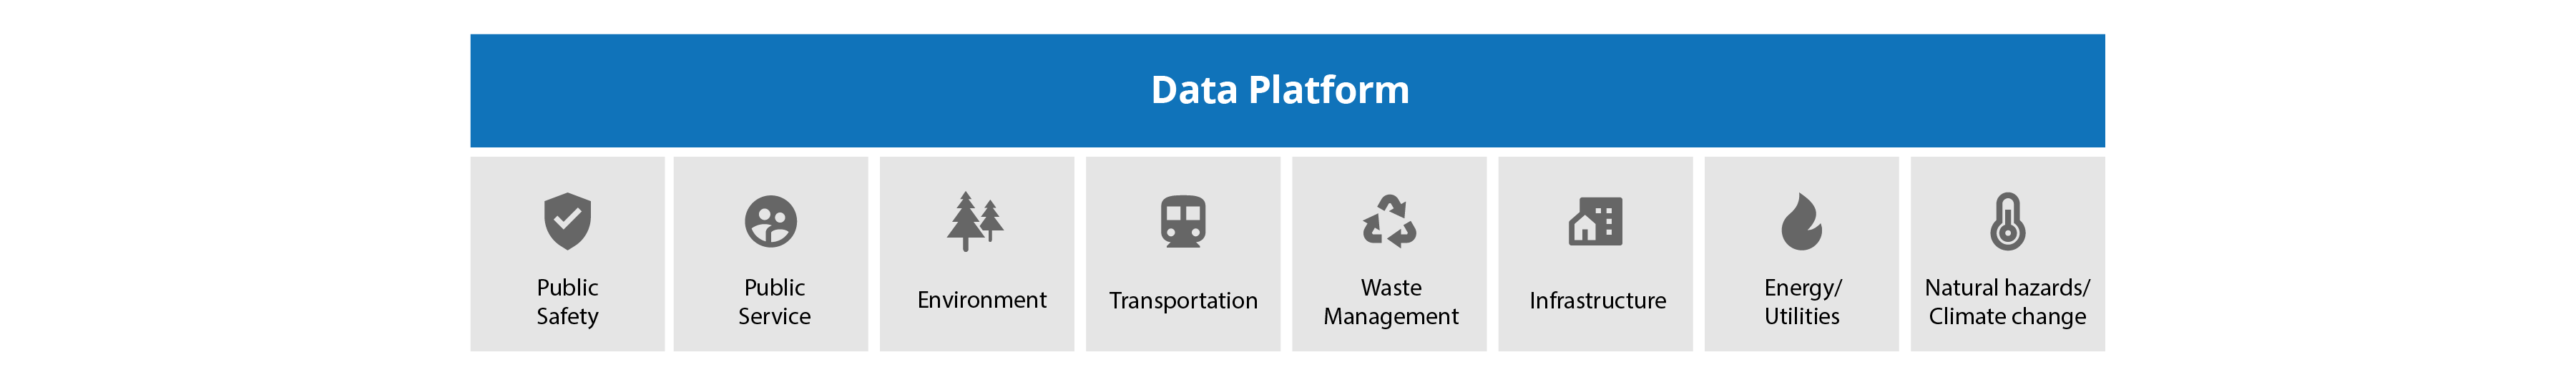 The components of a data platform